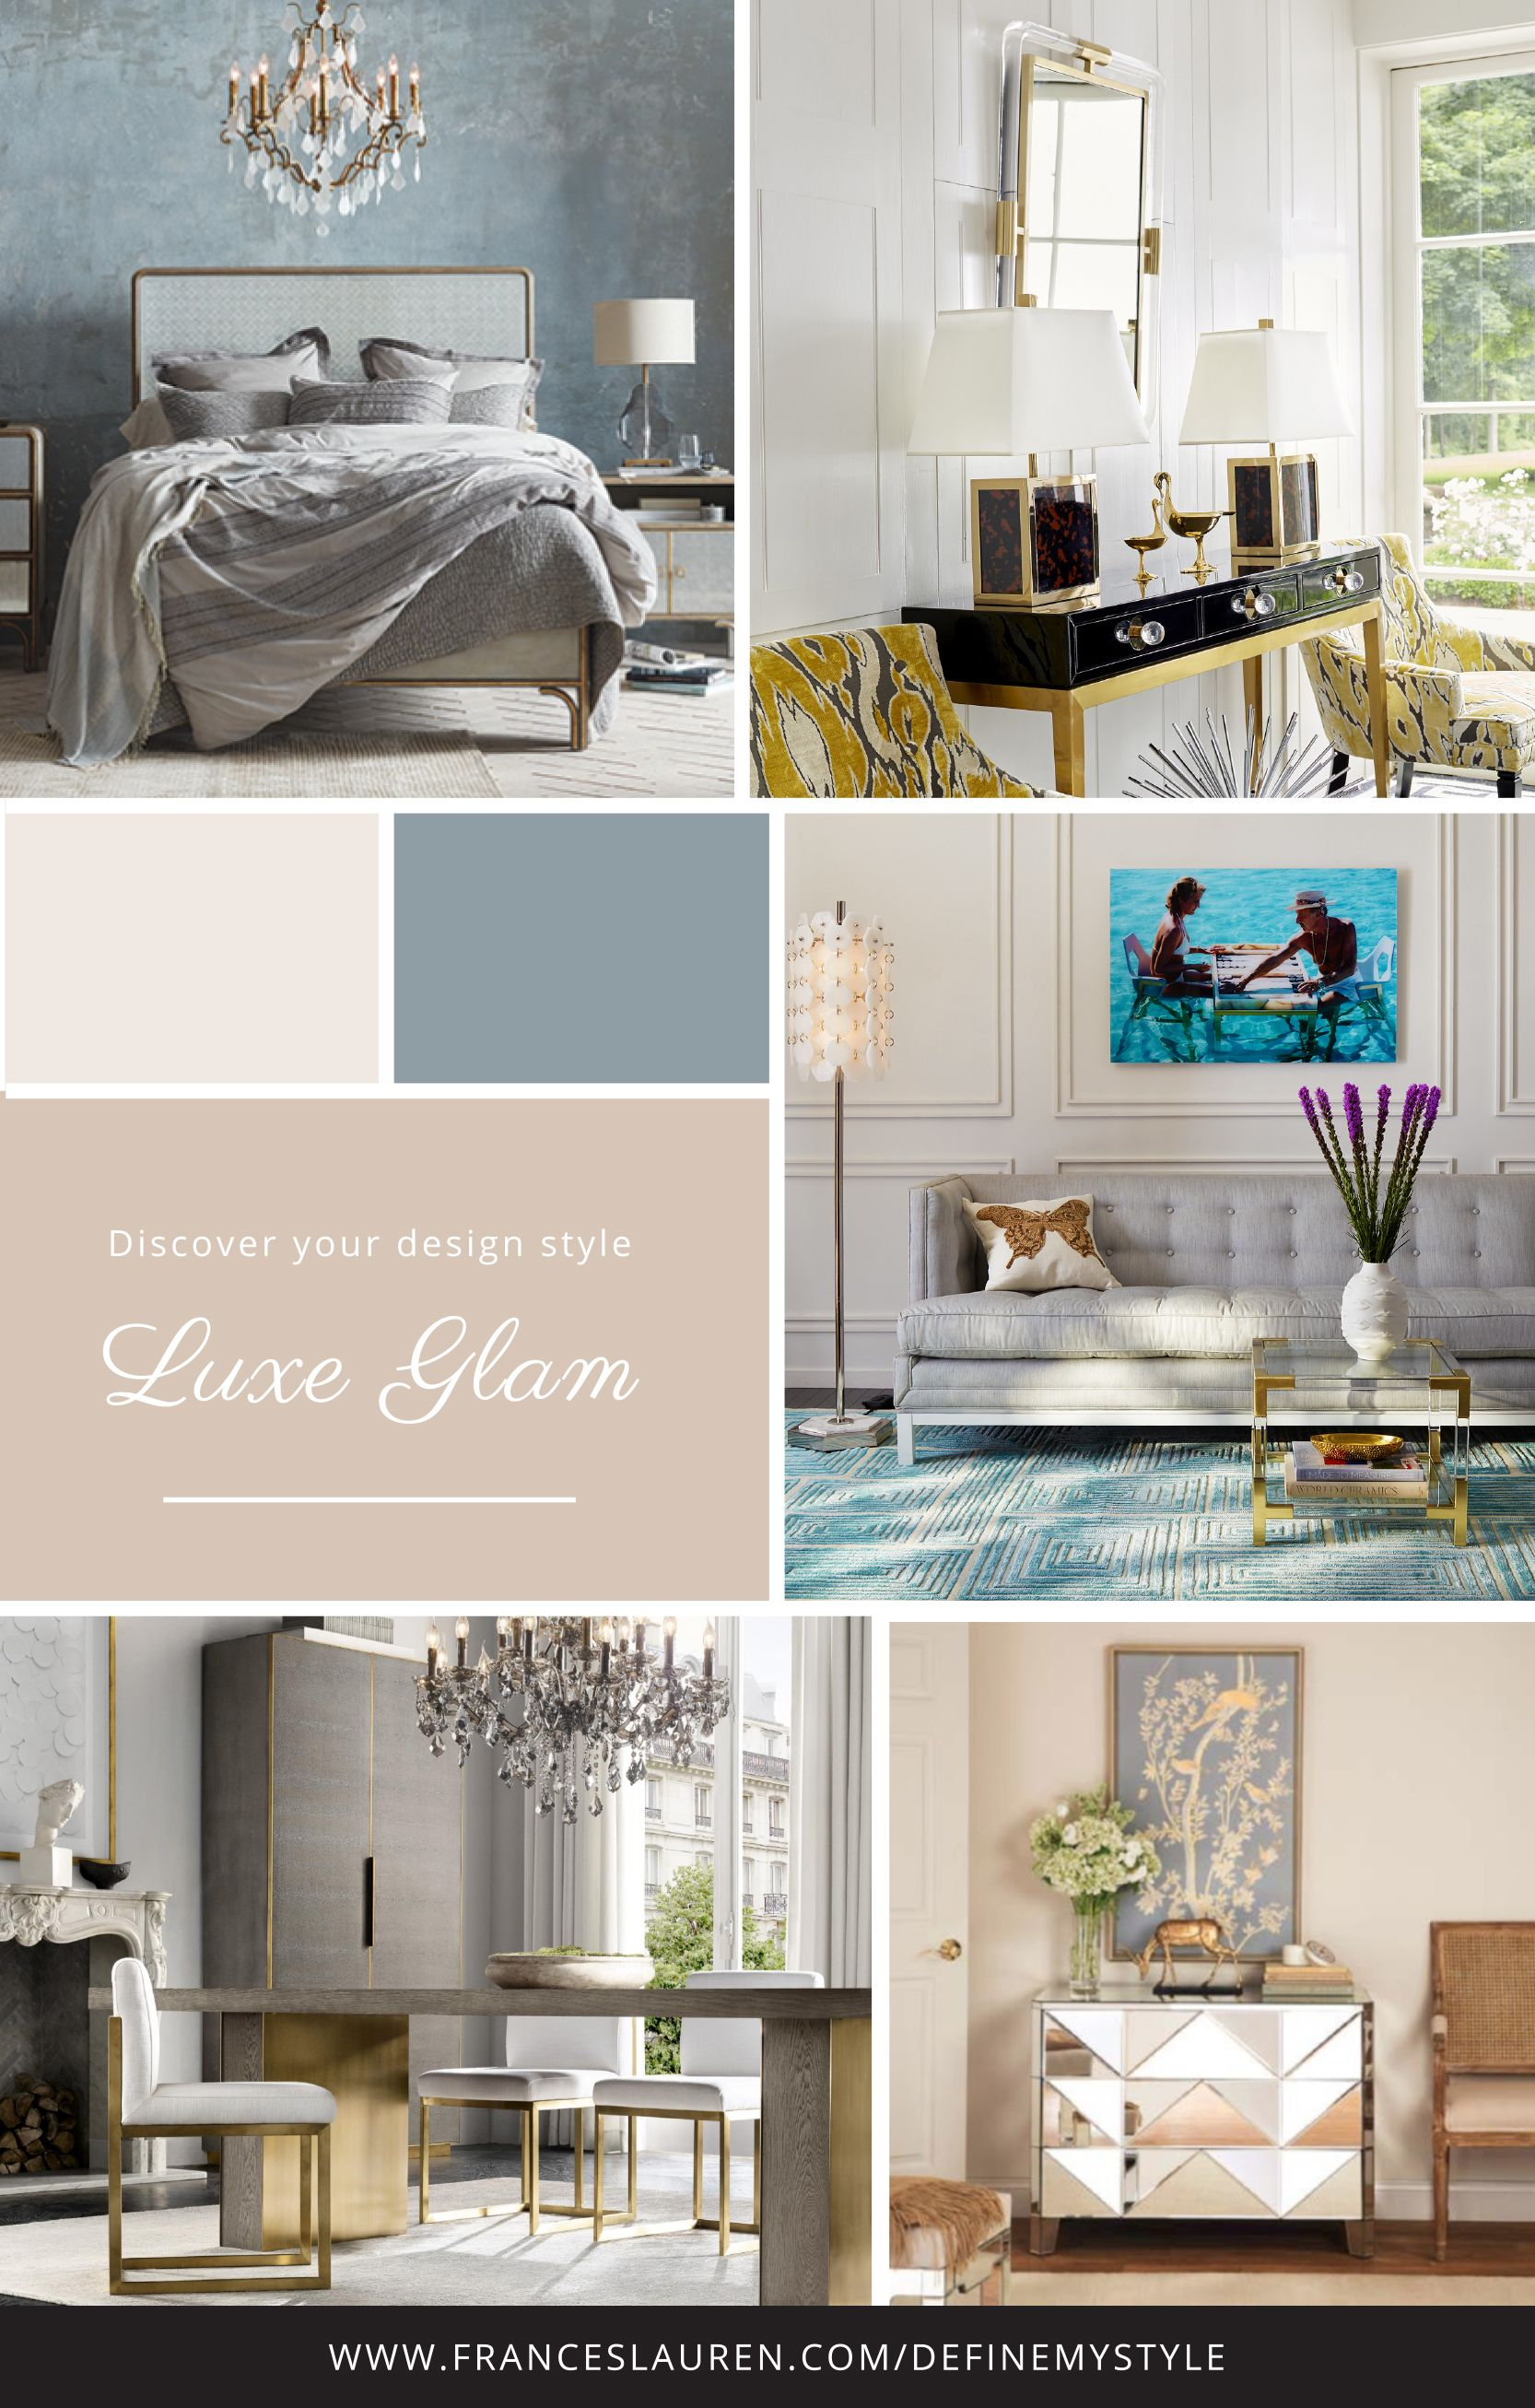 Luxe Glam Style Interior Design Take Our Quiz To Discover Your